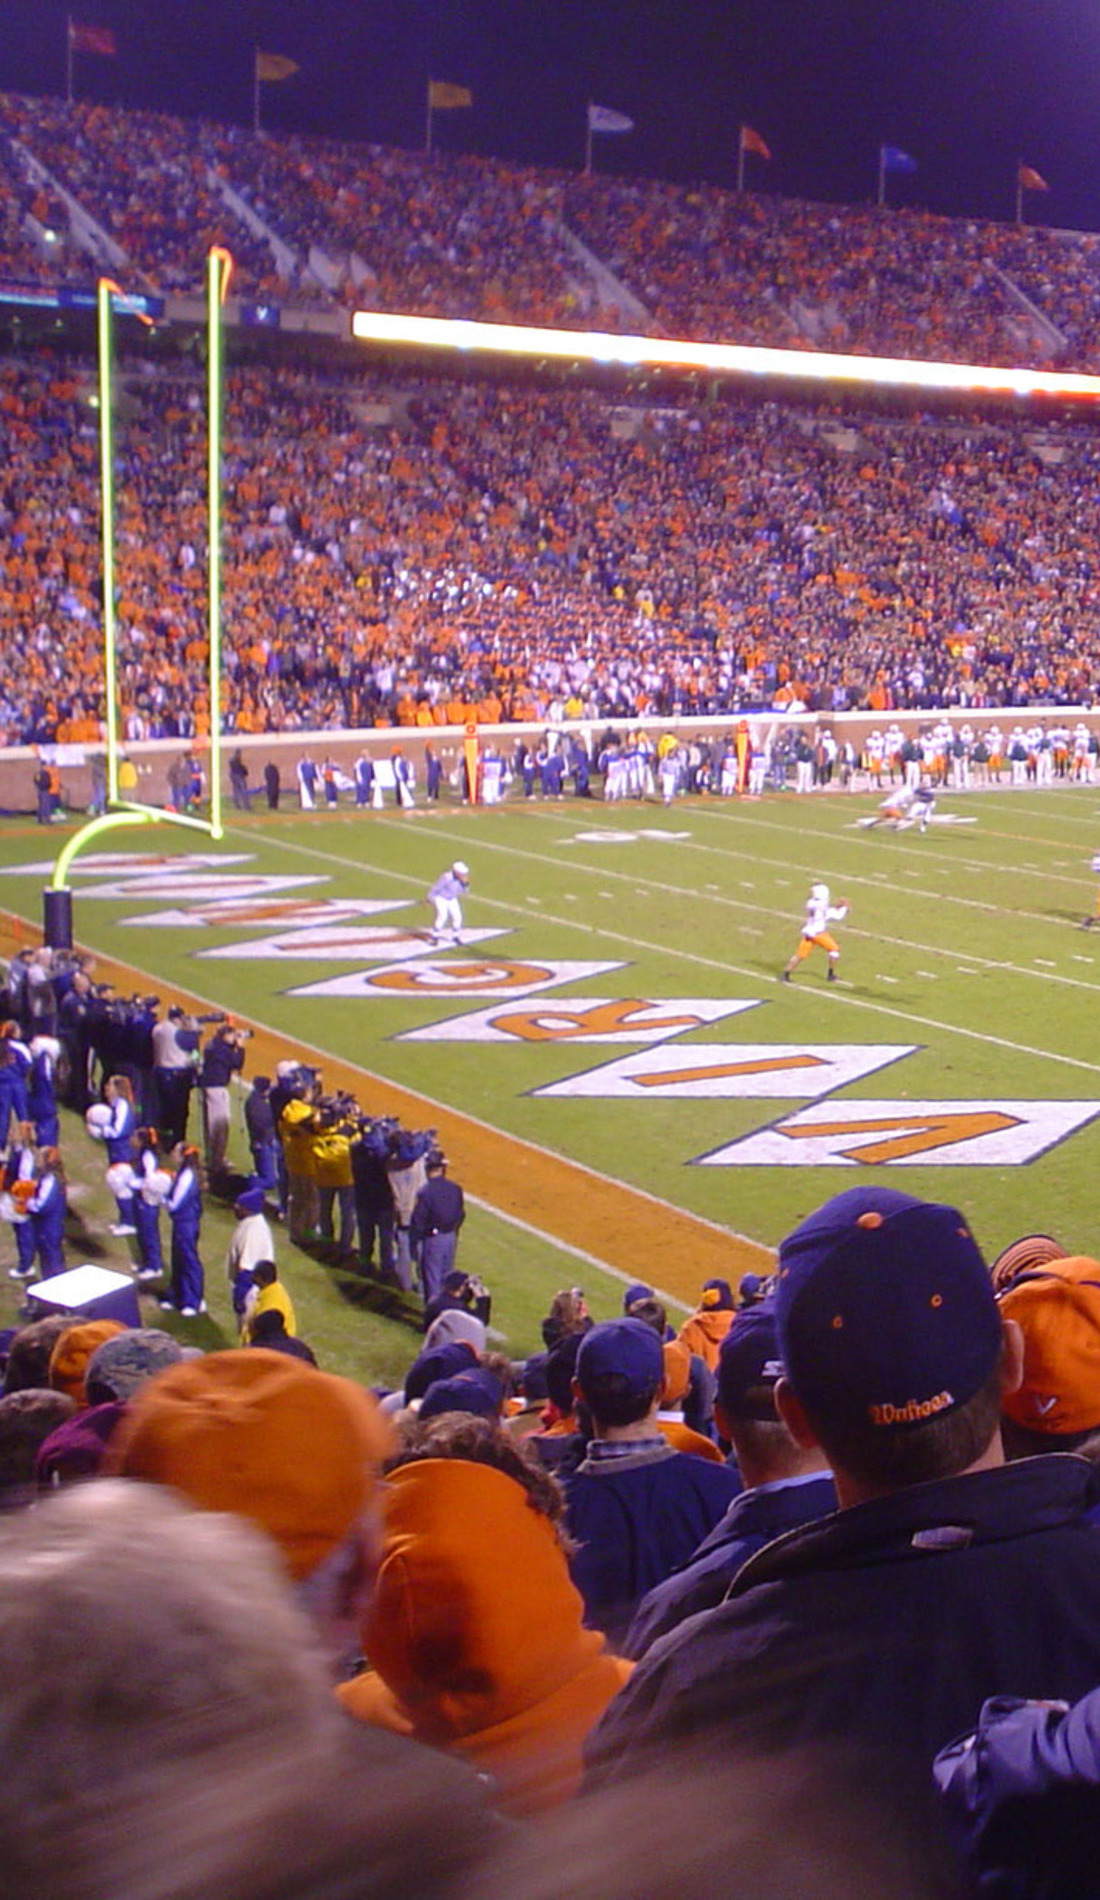 A Virginia Cavaliers Football live event